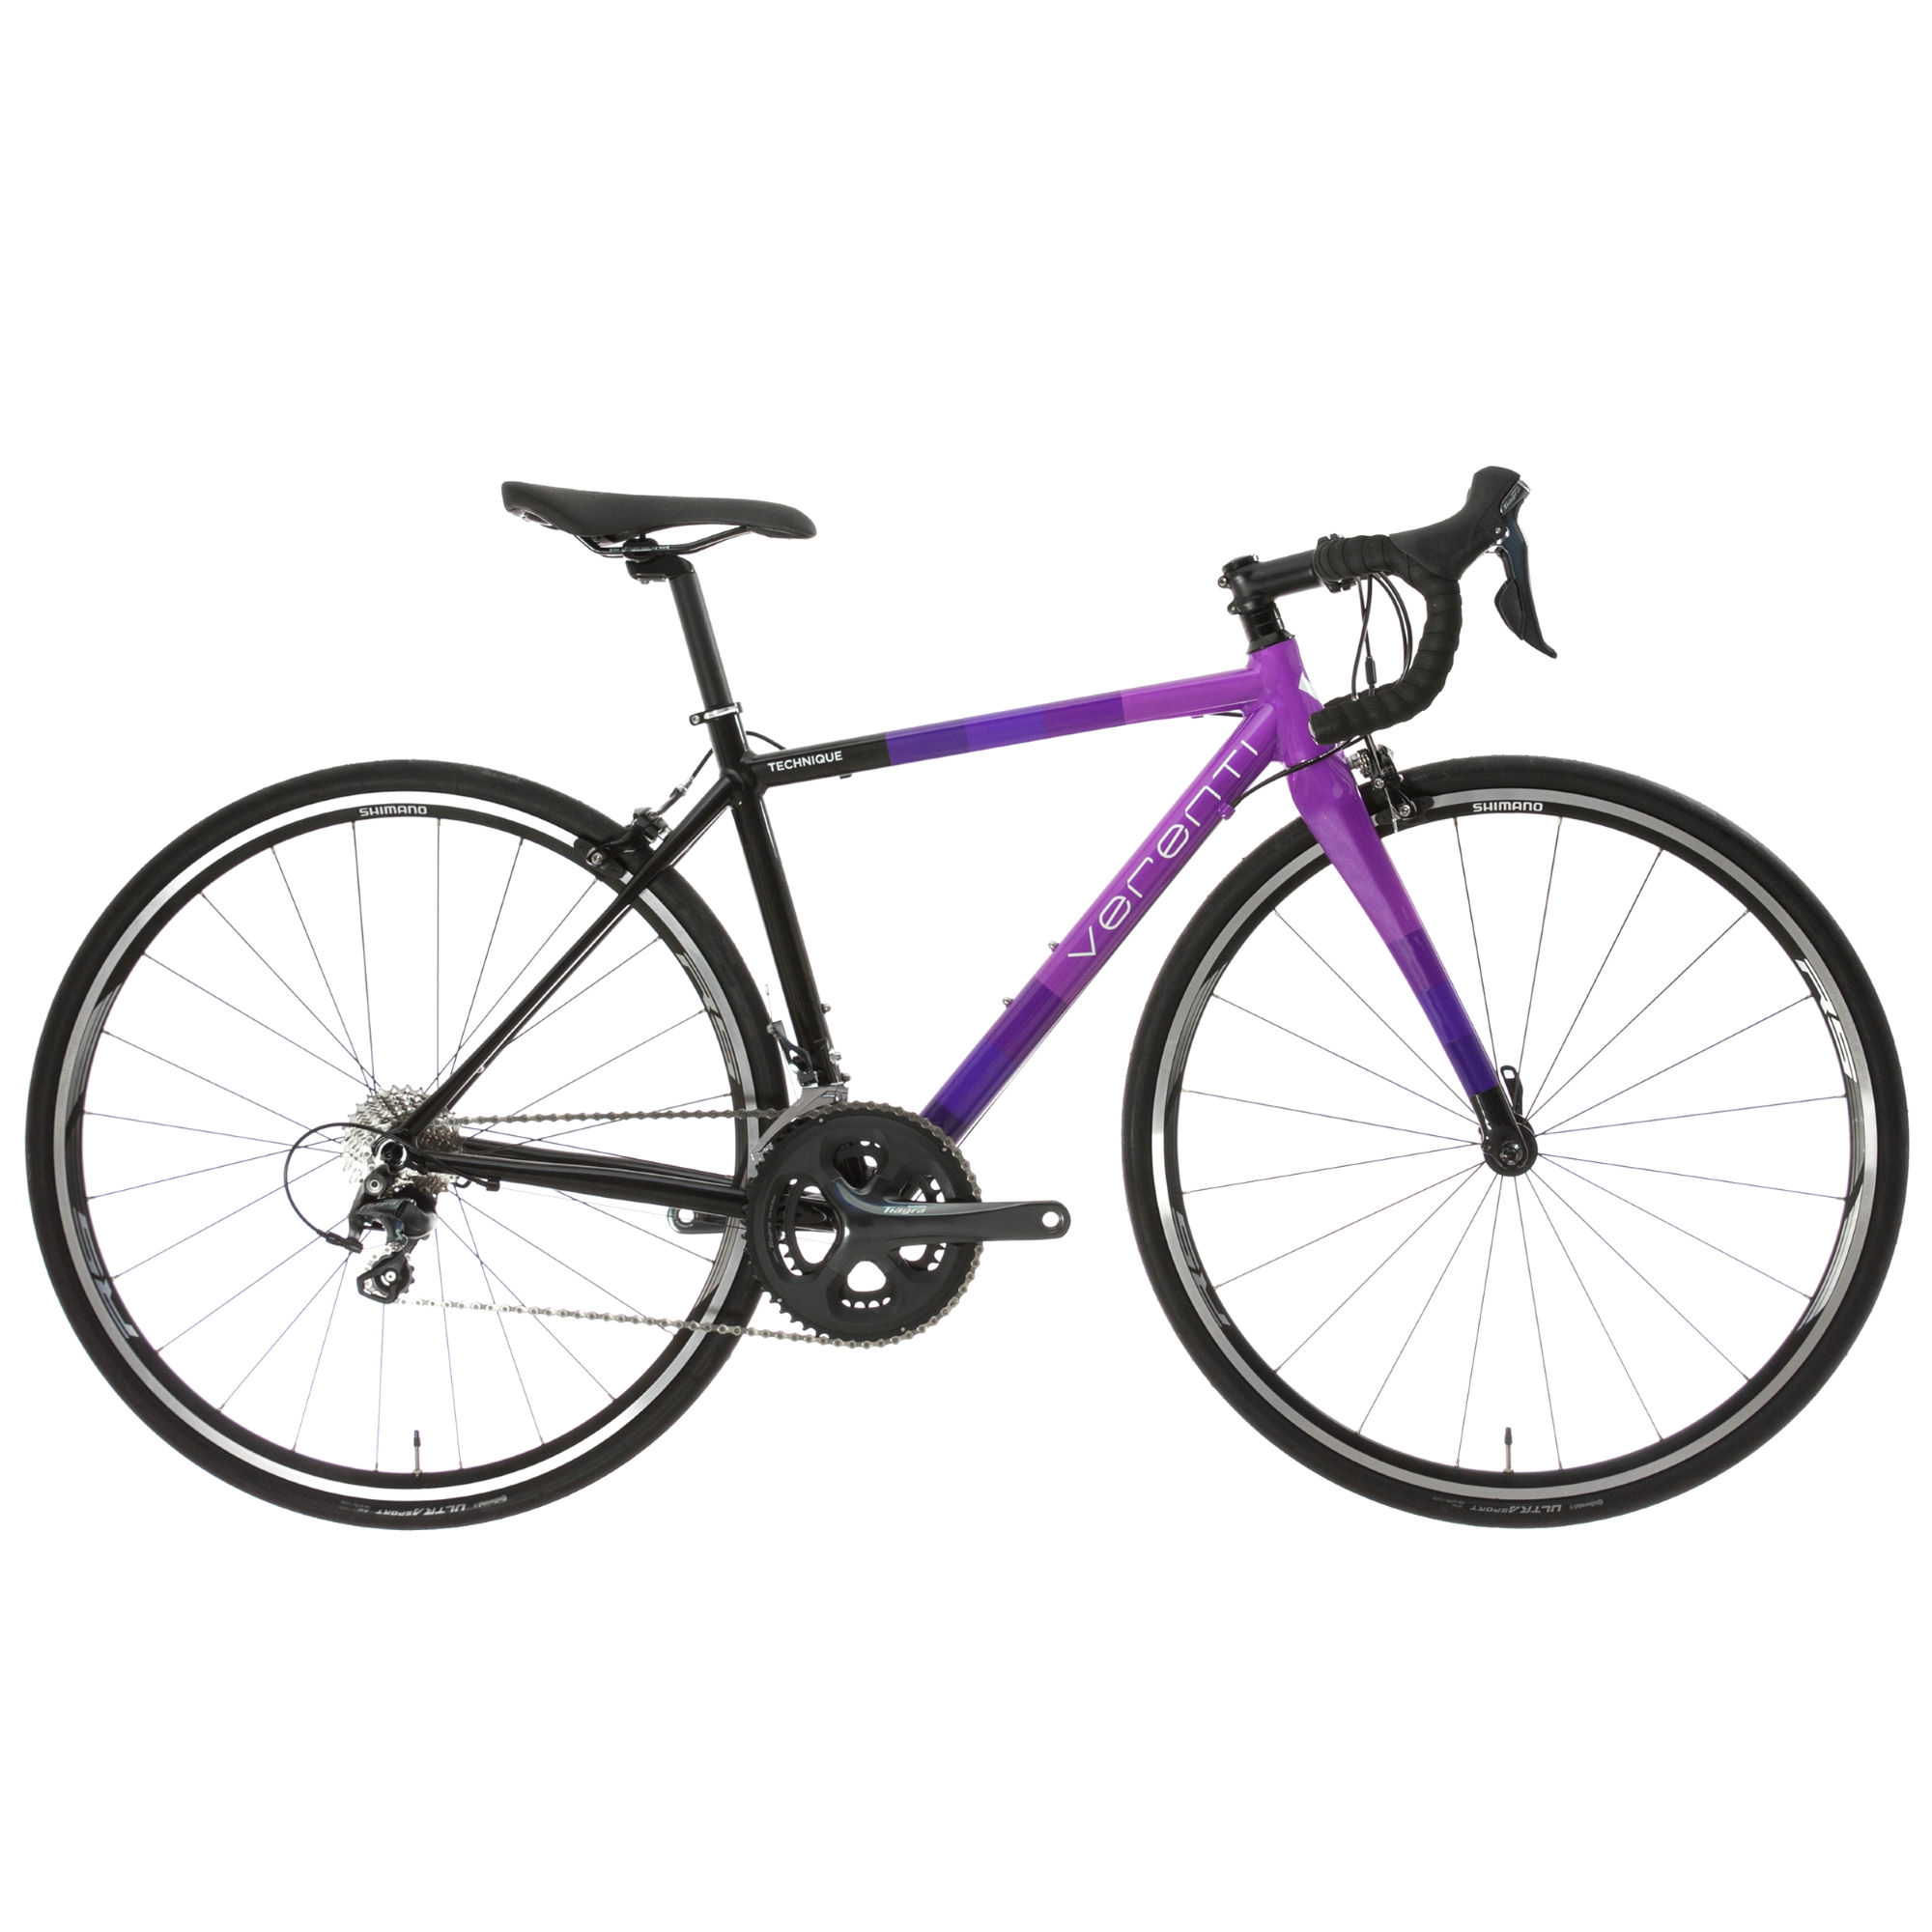 Verenti Technique Tiagra Women S 2017 Road Bike